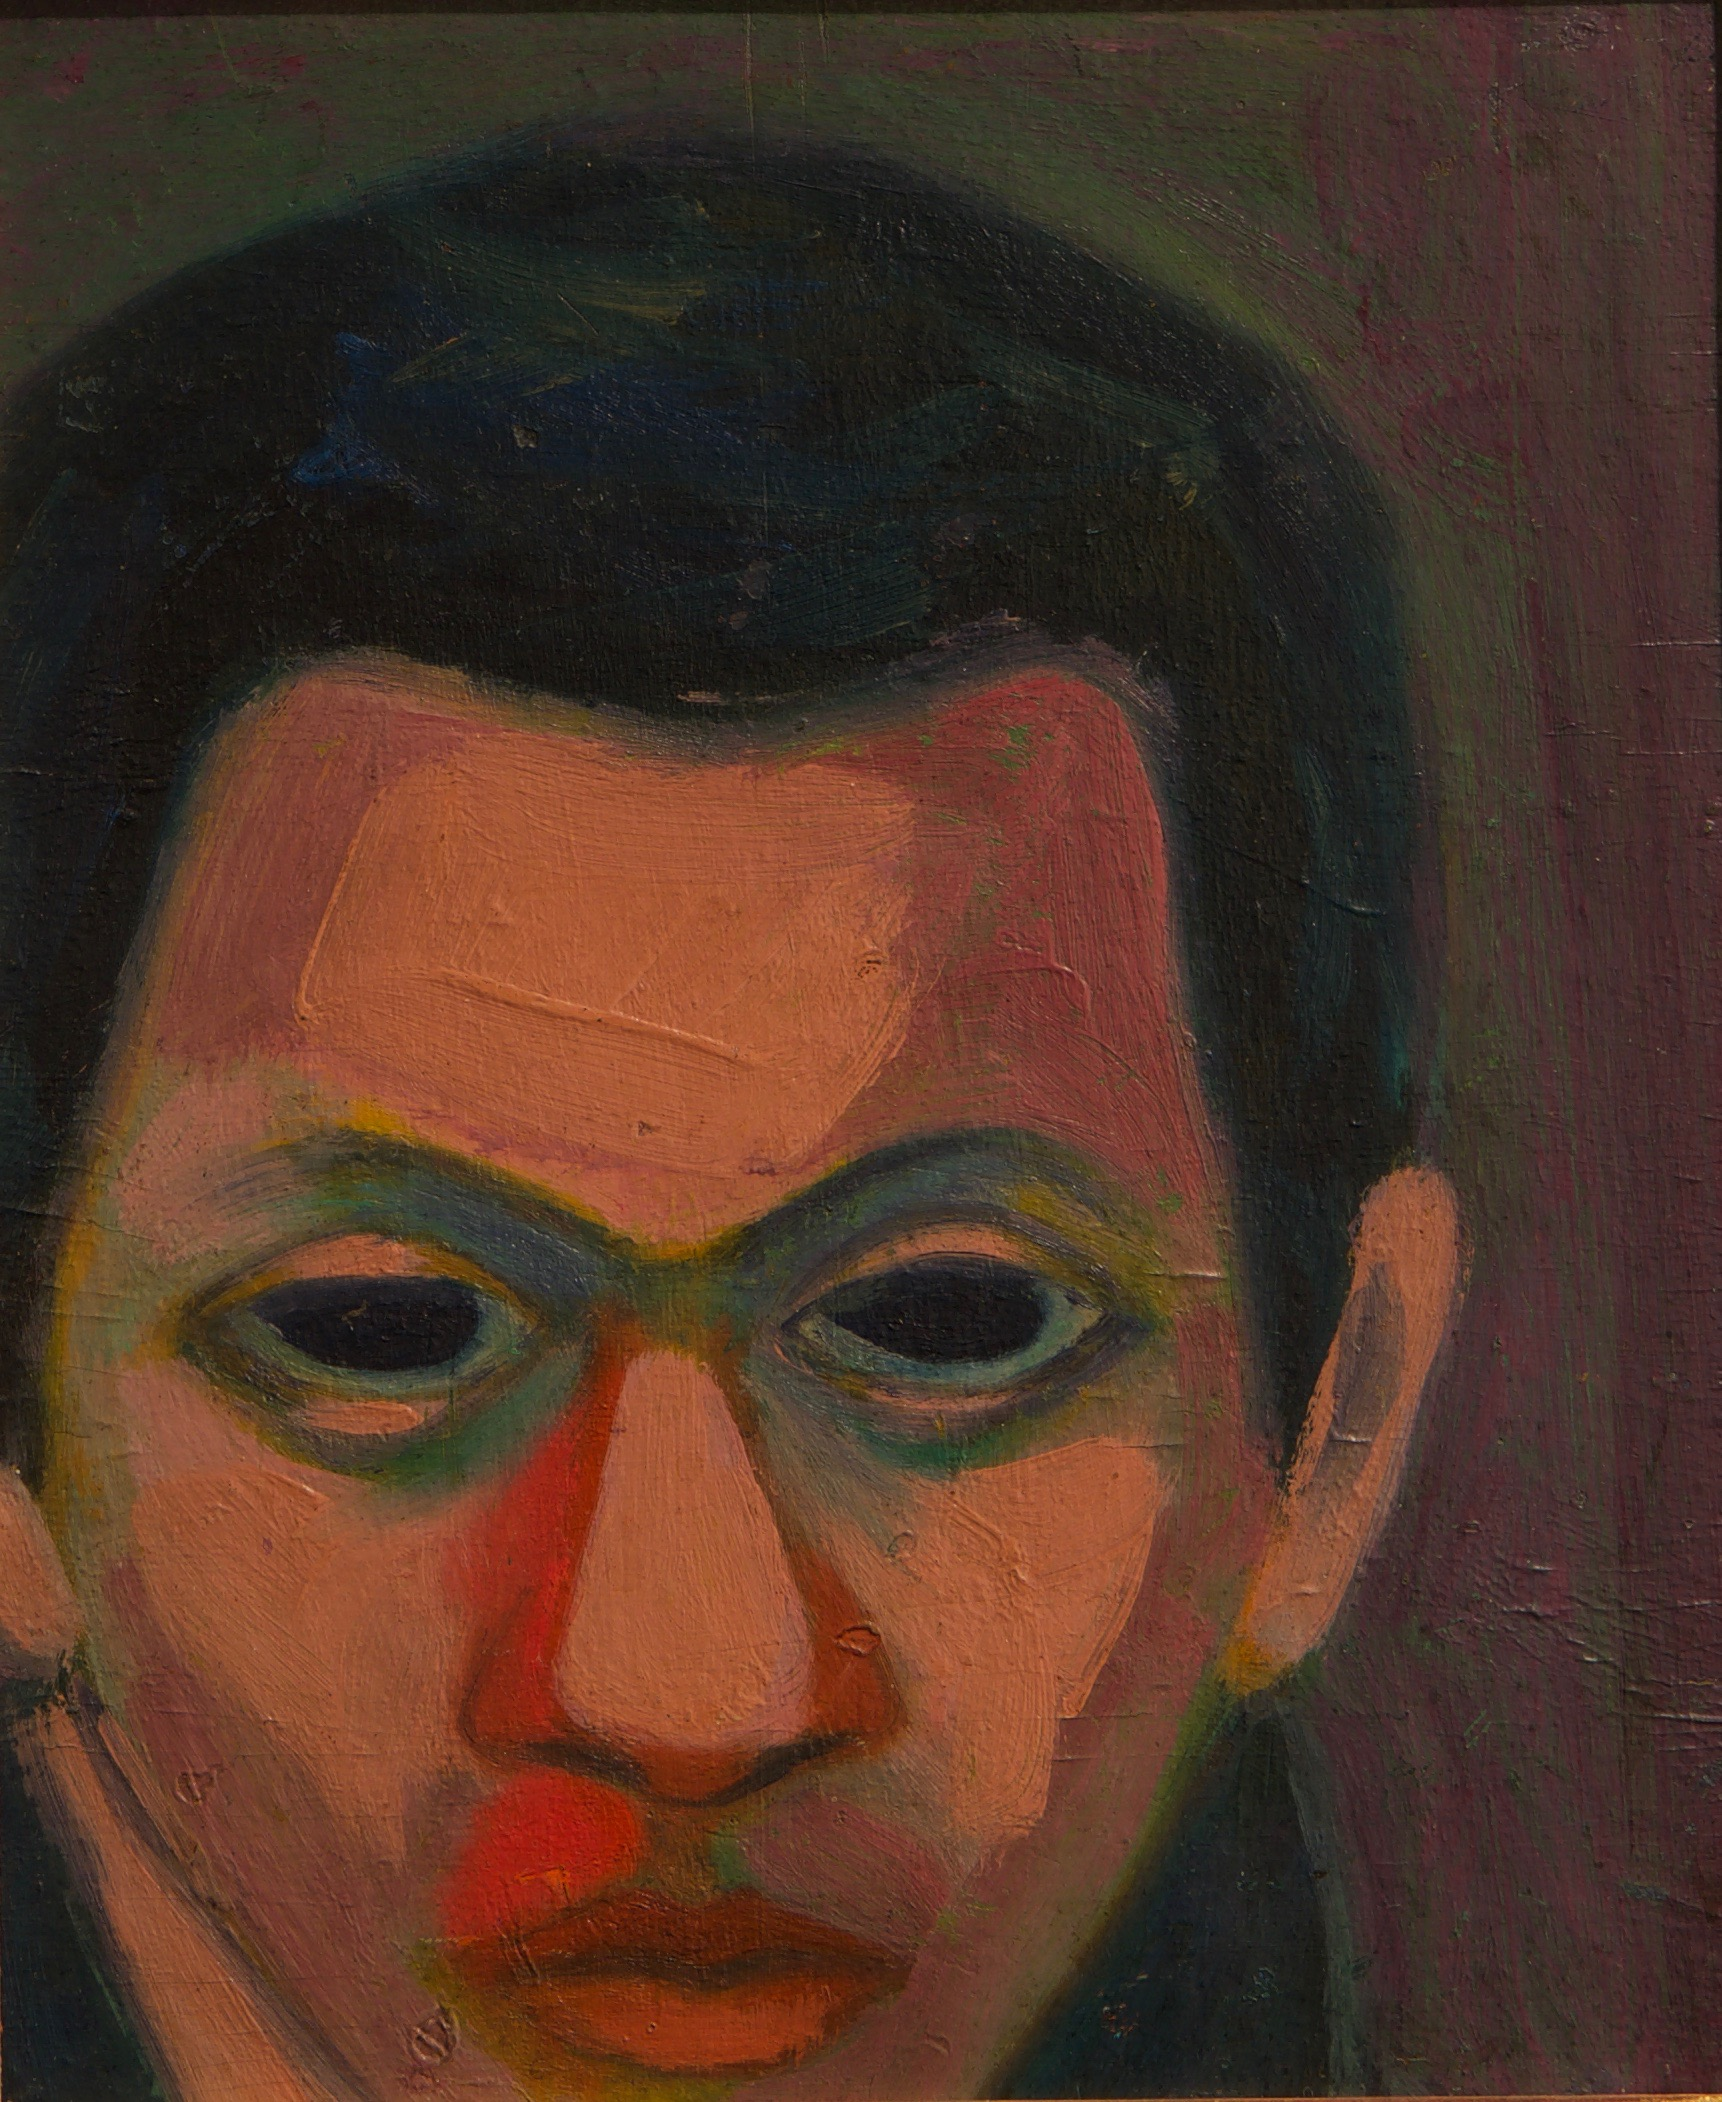 Ahmed-Morsi-Self-Portrait-Alexandria-1953.jpg